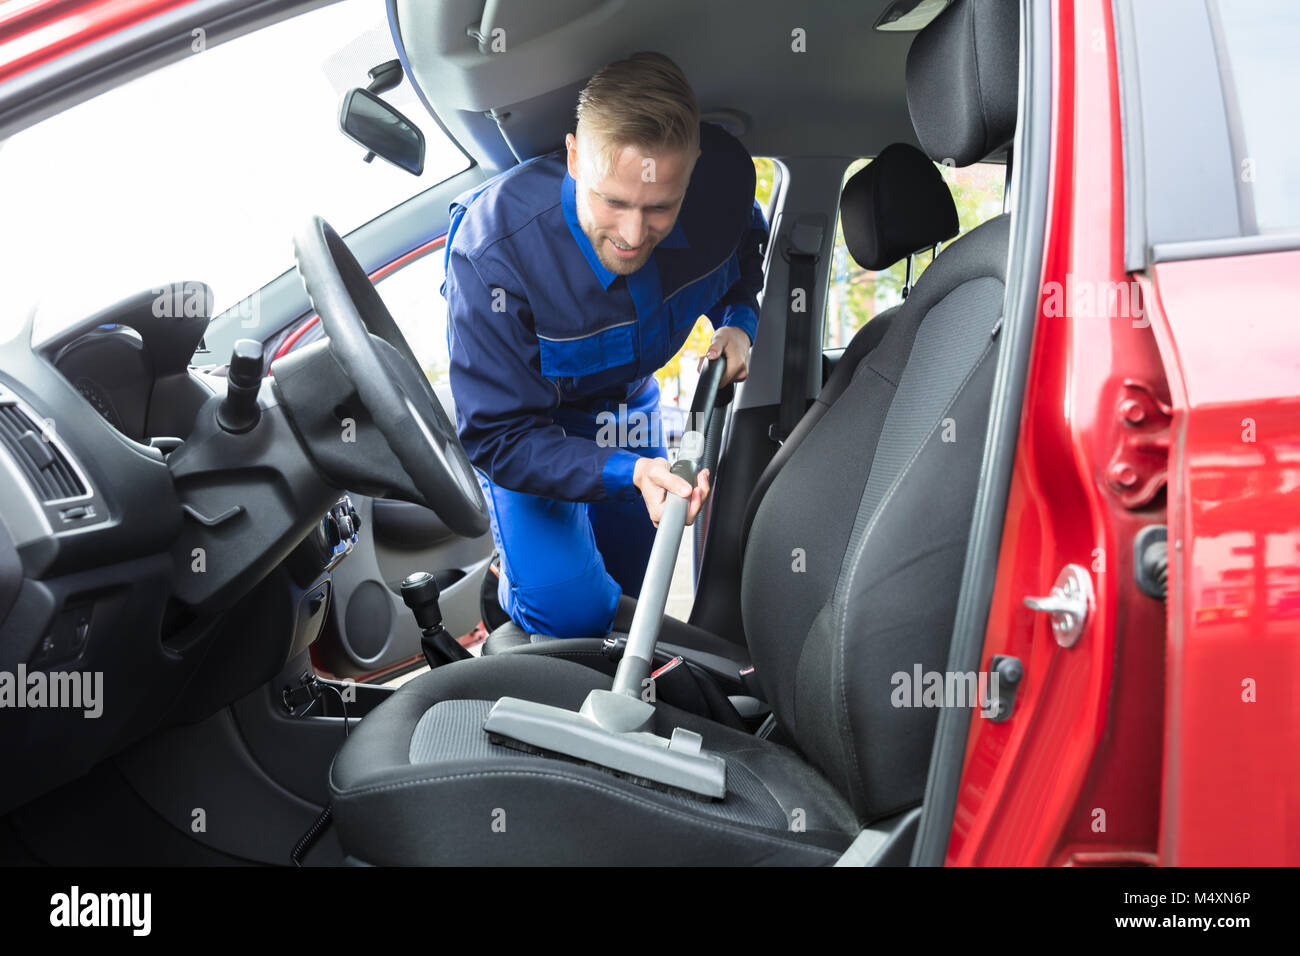 Young Happy Worker Vacuuming Car Seat With Vacuum Cleaner Stock